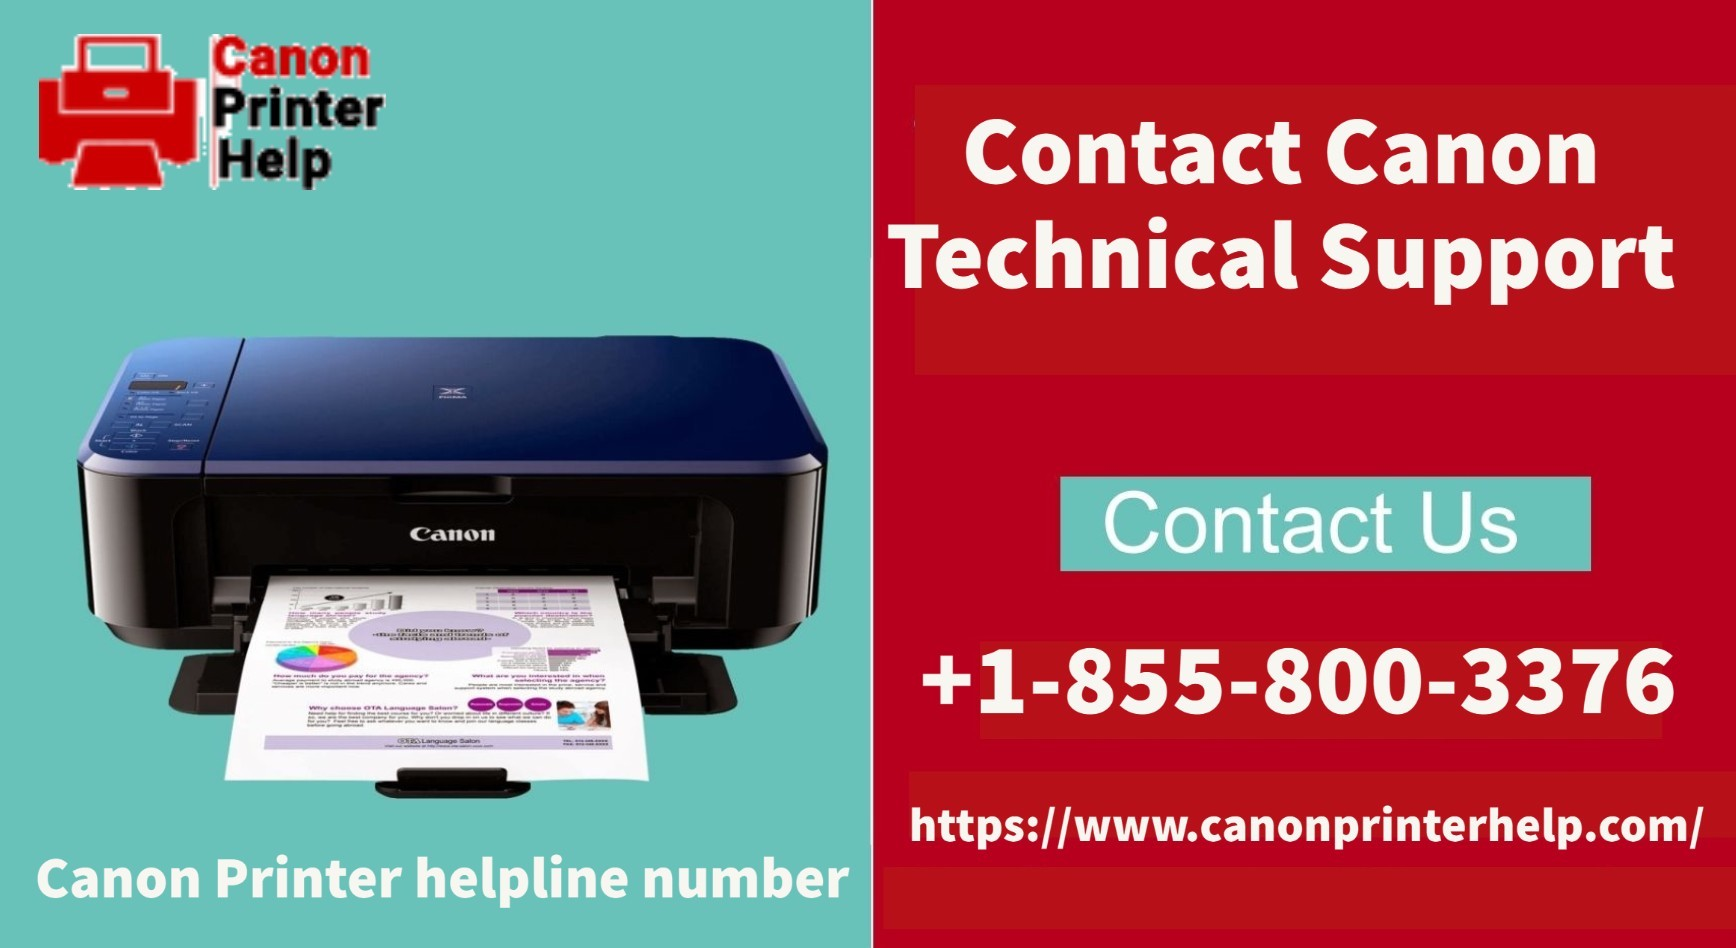 What is a simple method to download ij.start canon setup Printer Driver?